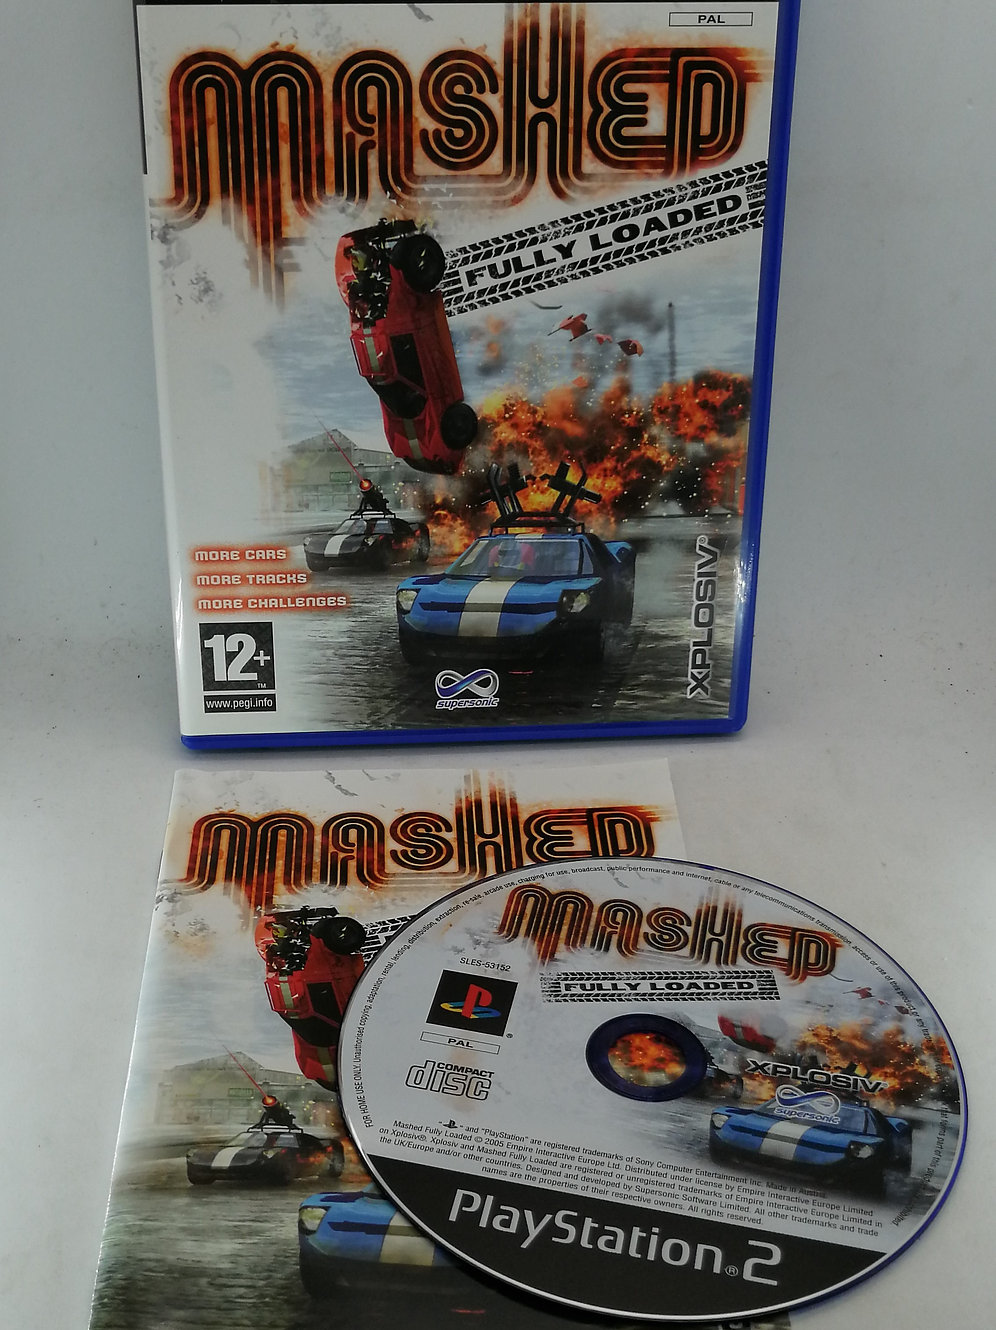 Mashed: Fully Loaded for Sony PlayStation 2 PS2